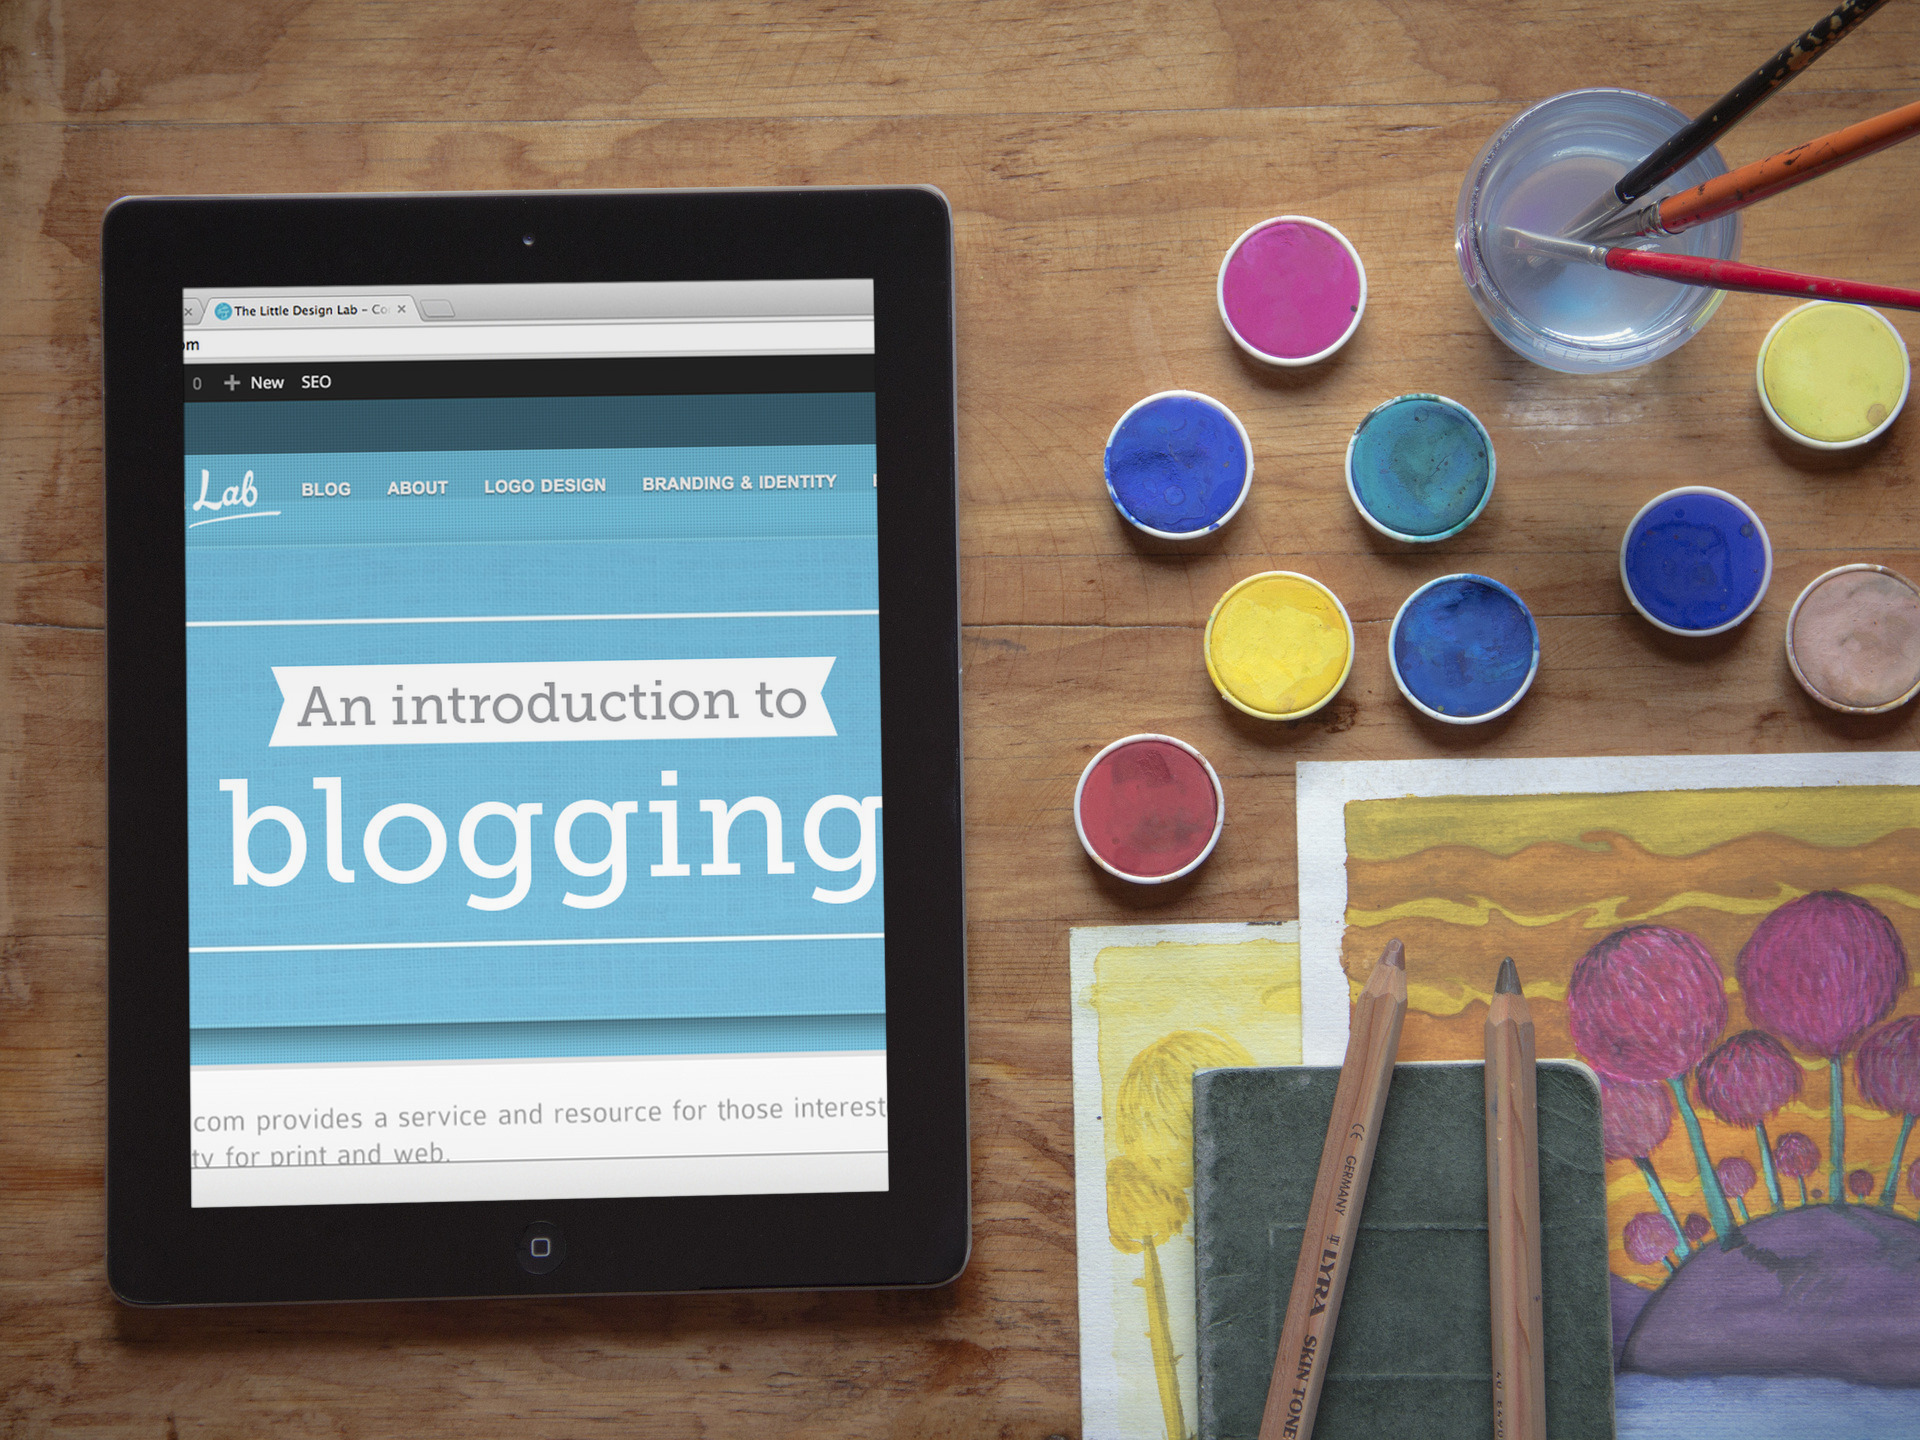 An introduction to blogging